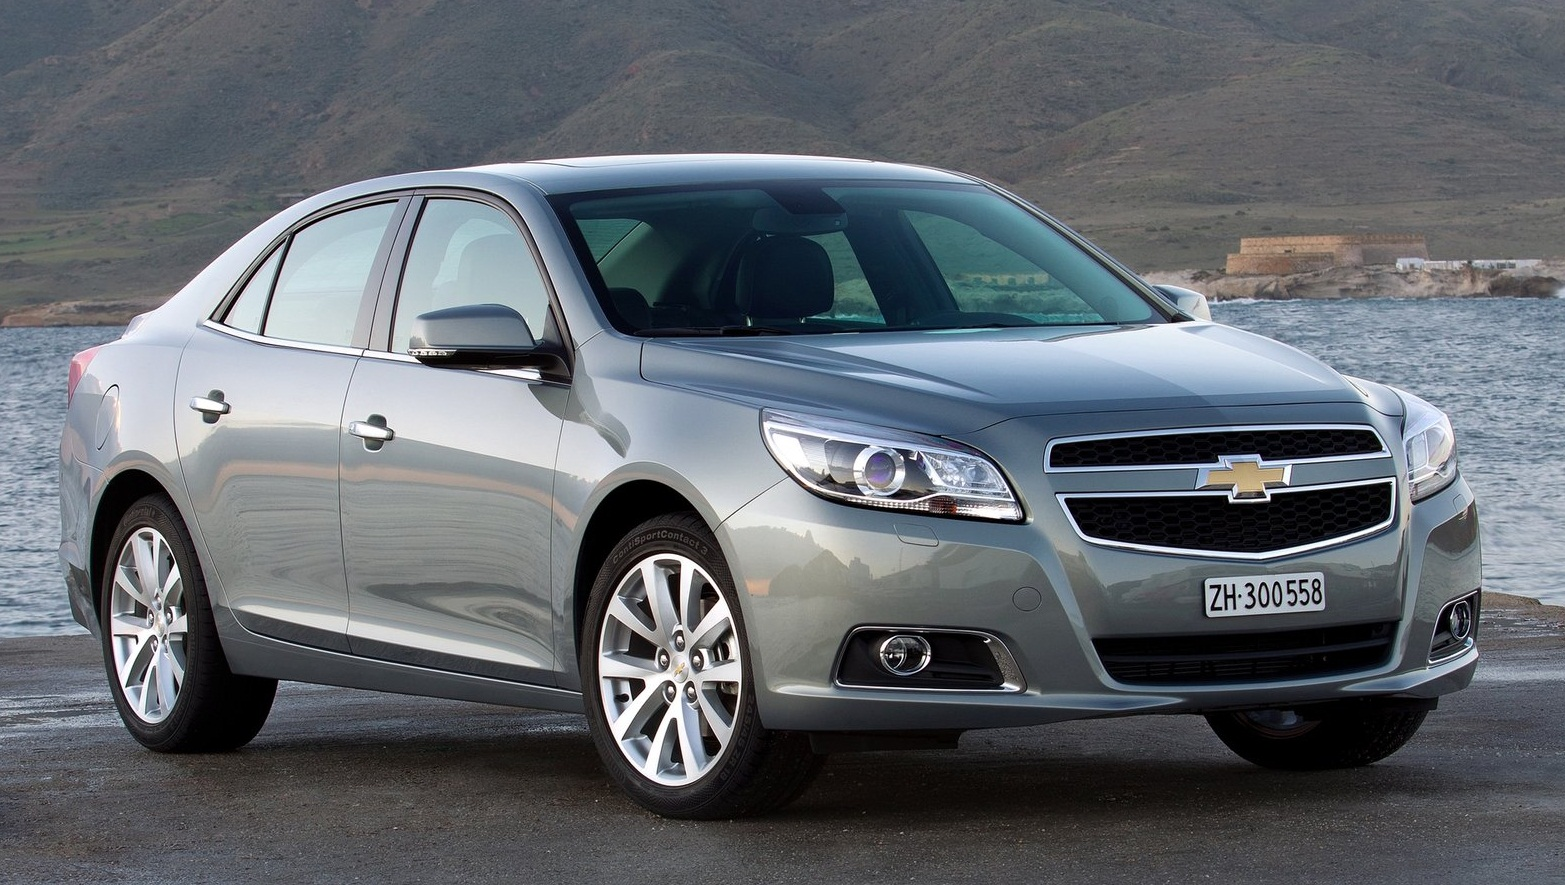 Chevrolet malibu best values in used cars 2012 fixcars cars news reviews new used updates